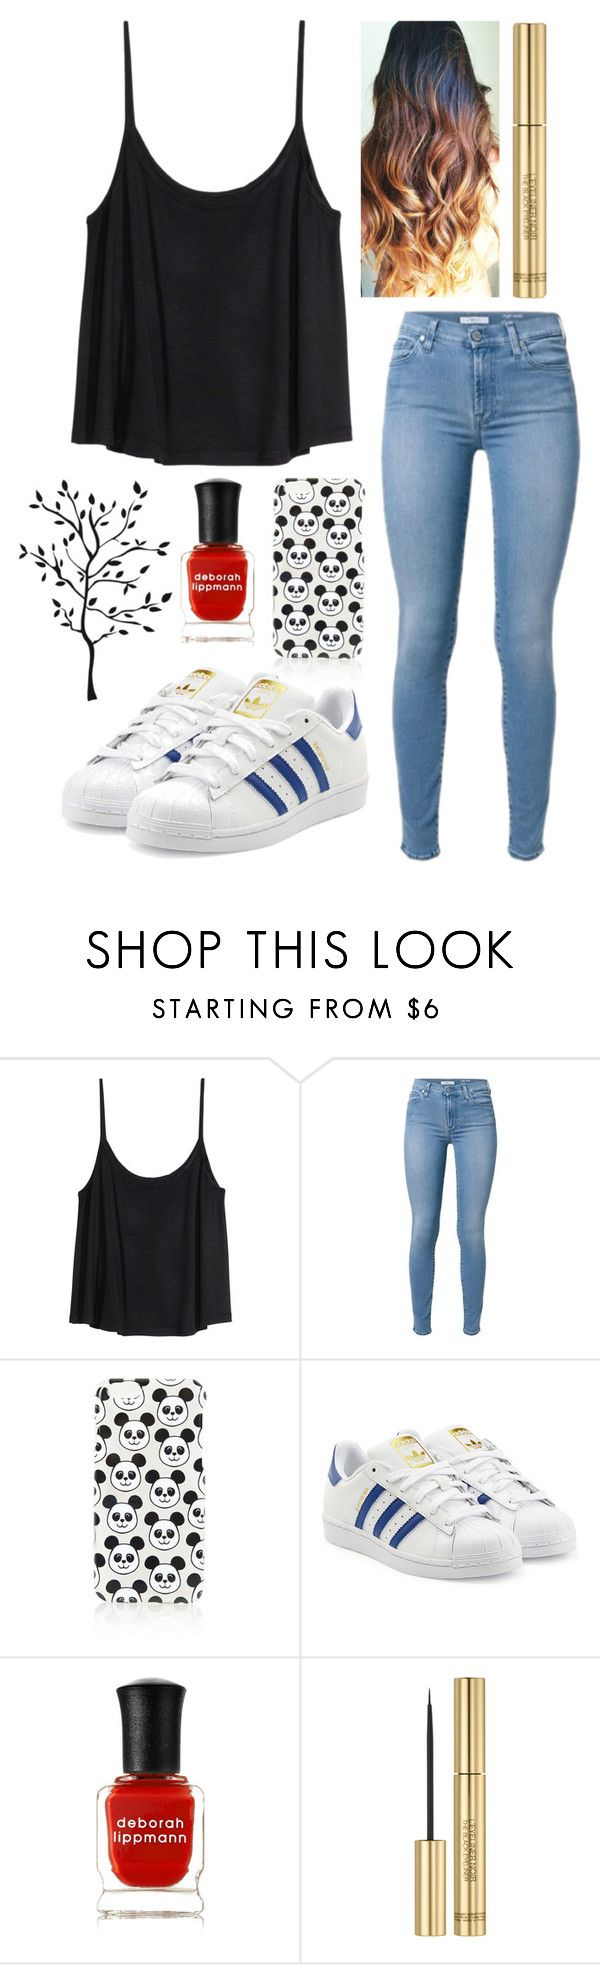 """605."" by itsmy123 ❤ liked on Polyvore featuring H&M, Topshop, adidas Originals, Deborah Lippmann and Yves Saint Laurent"